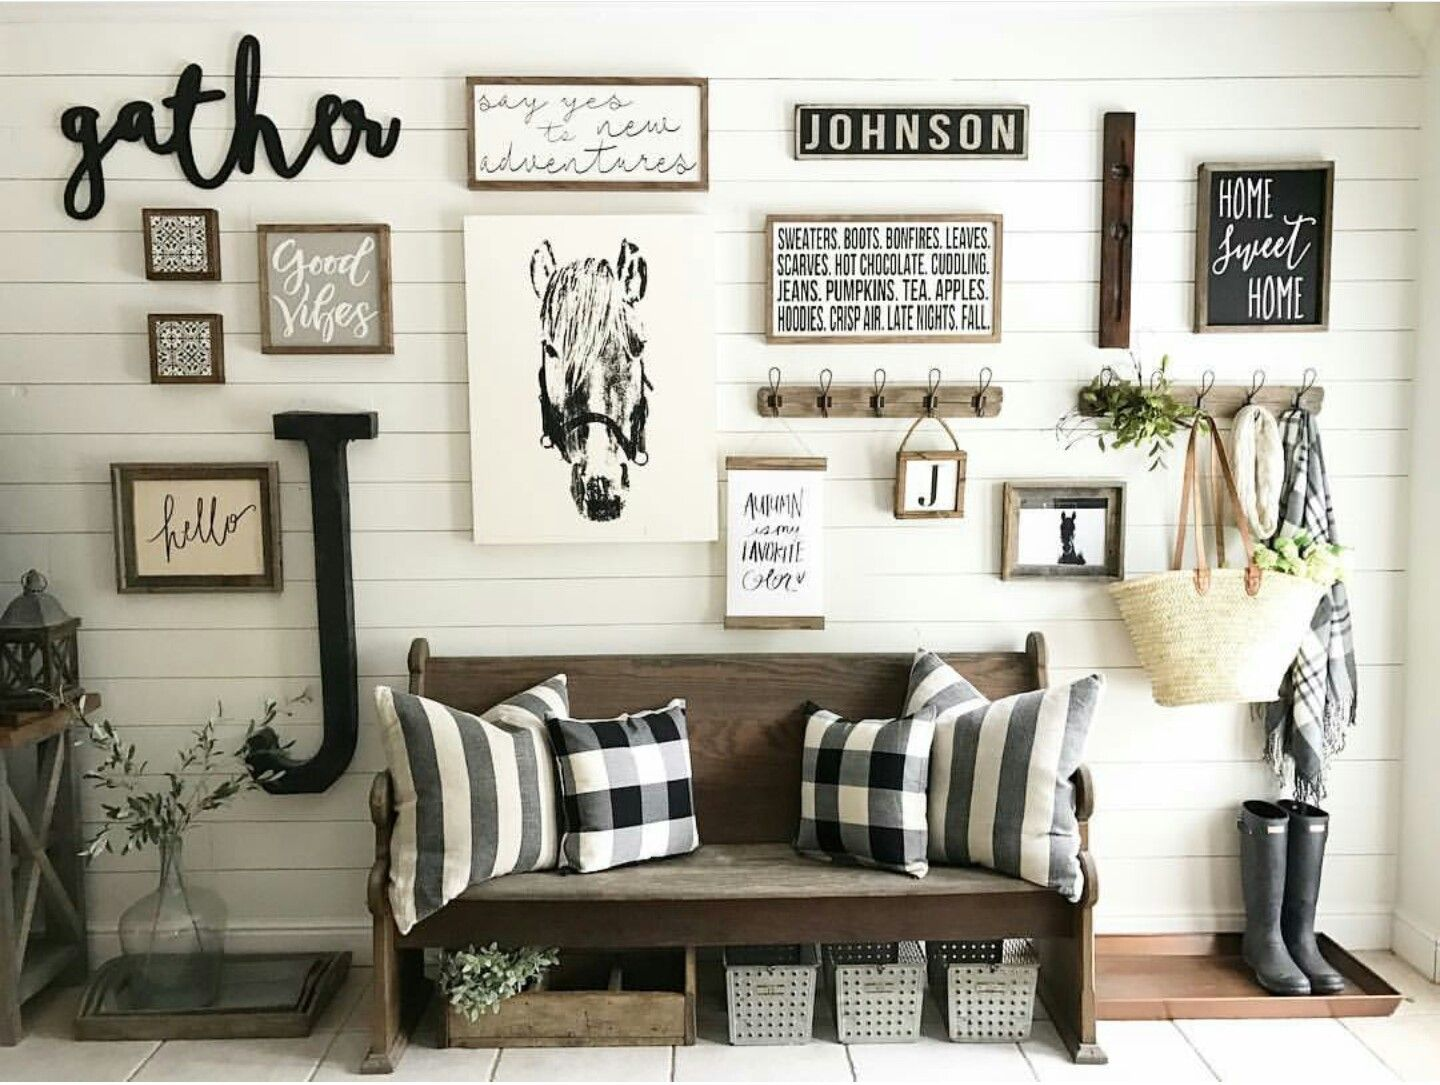 Pin by Dee Rinehart on for next home   Pinterest   Gallery wall ...